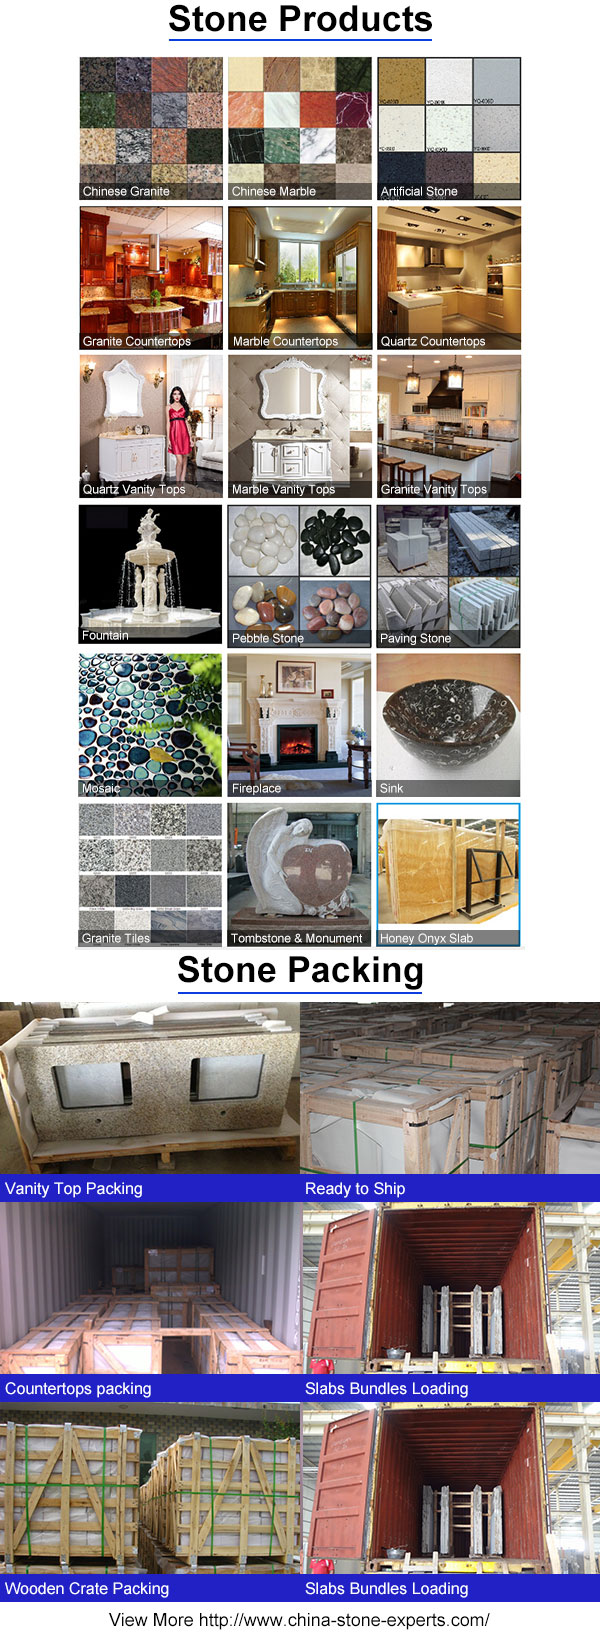 Chinese Granite Prefabricated Stone Countertops For